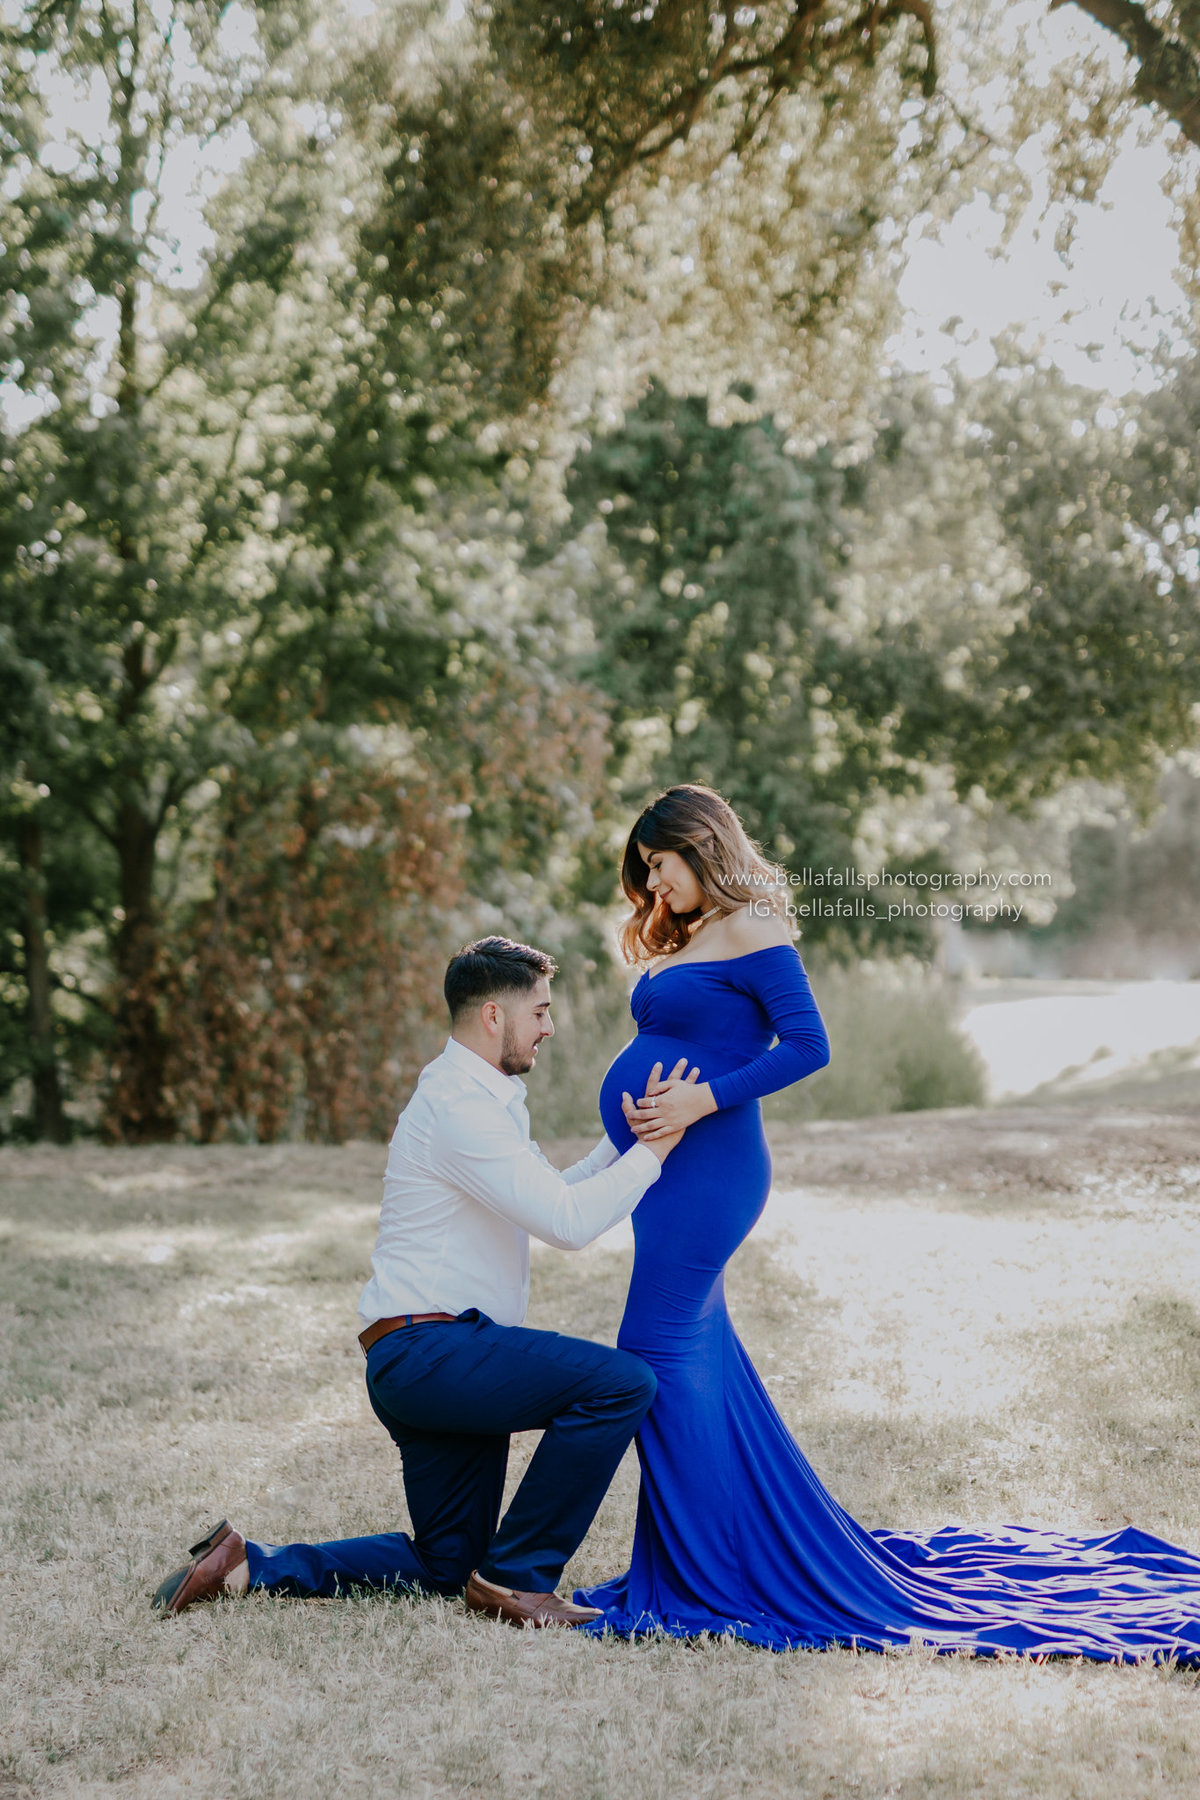 BellaFalls.Photography.Maternity-19